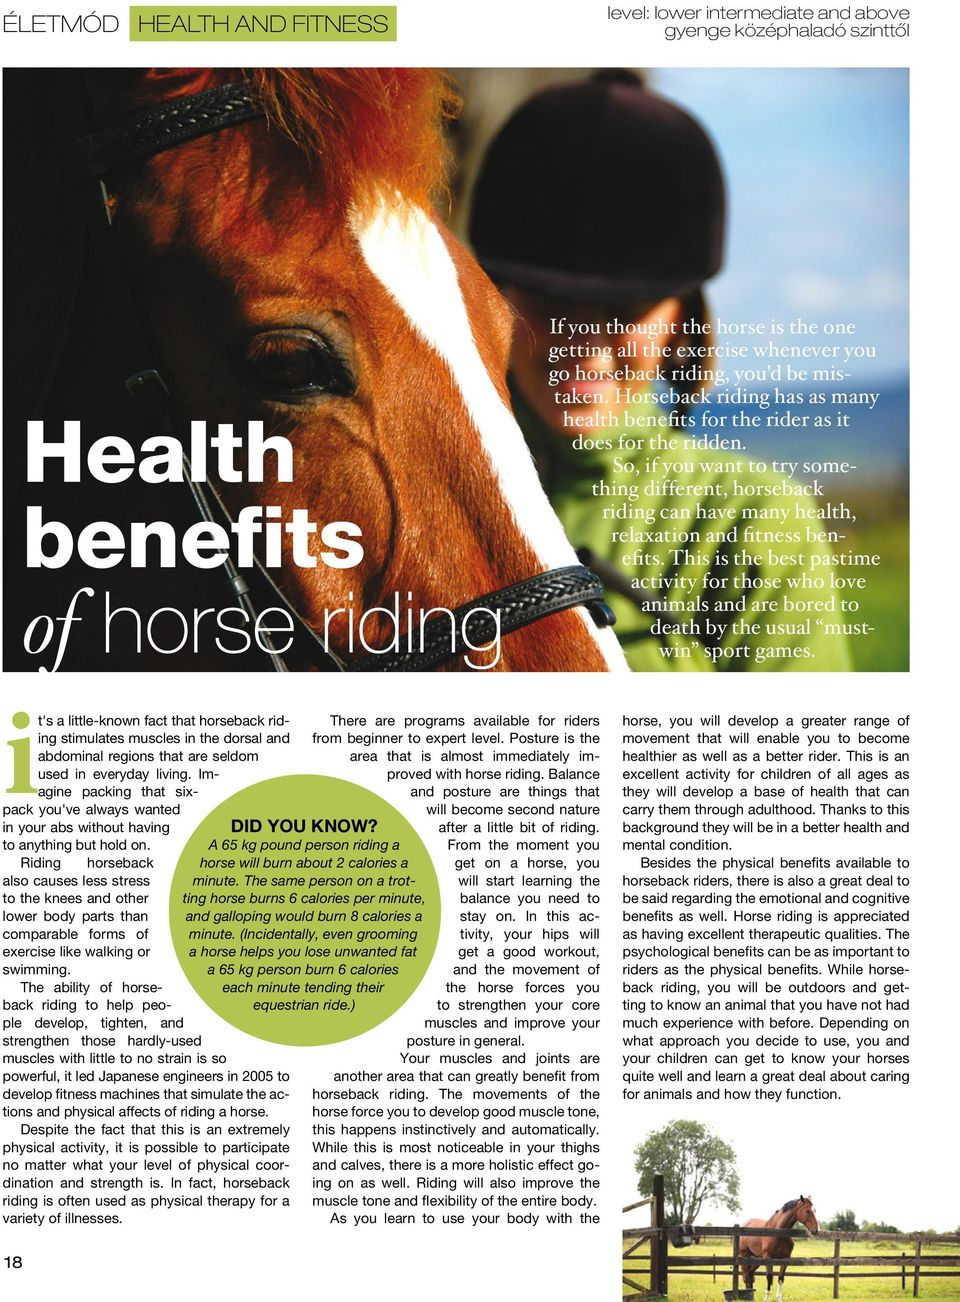 So, if you want to try something different, horseback riding can have many health, relaxation and fitness benefits.